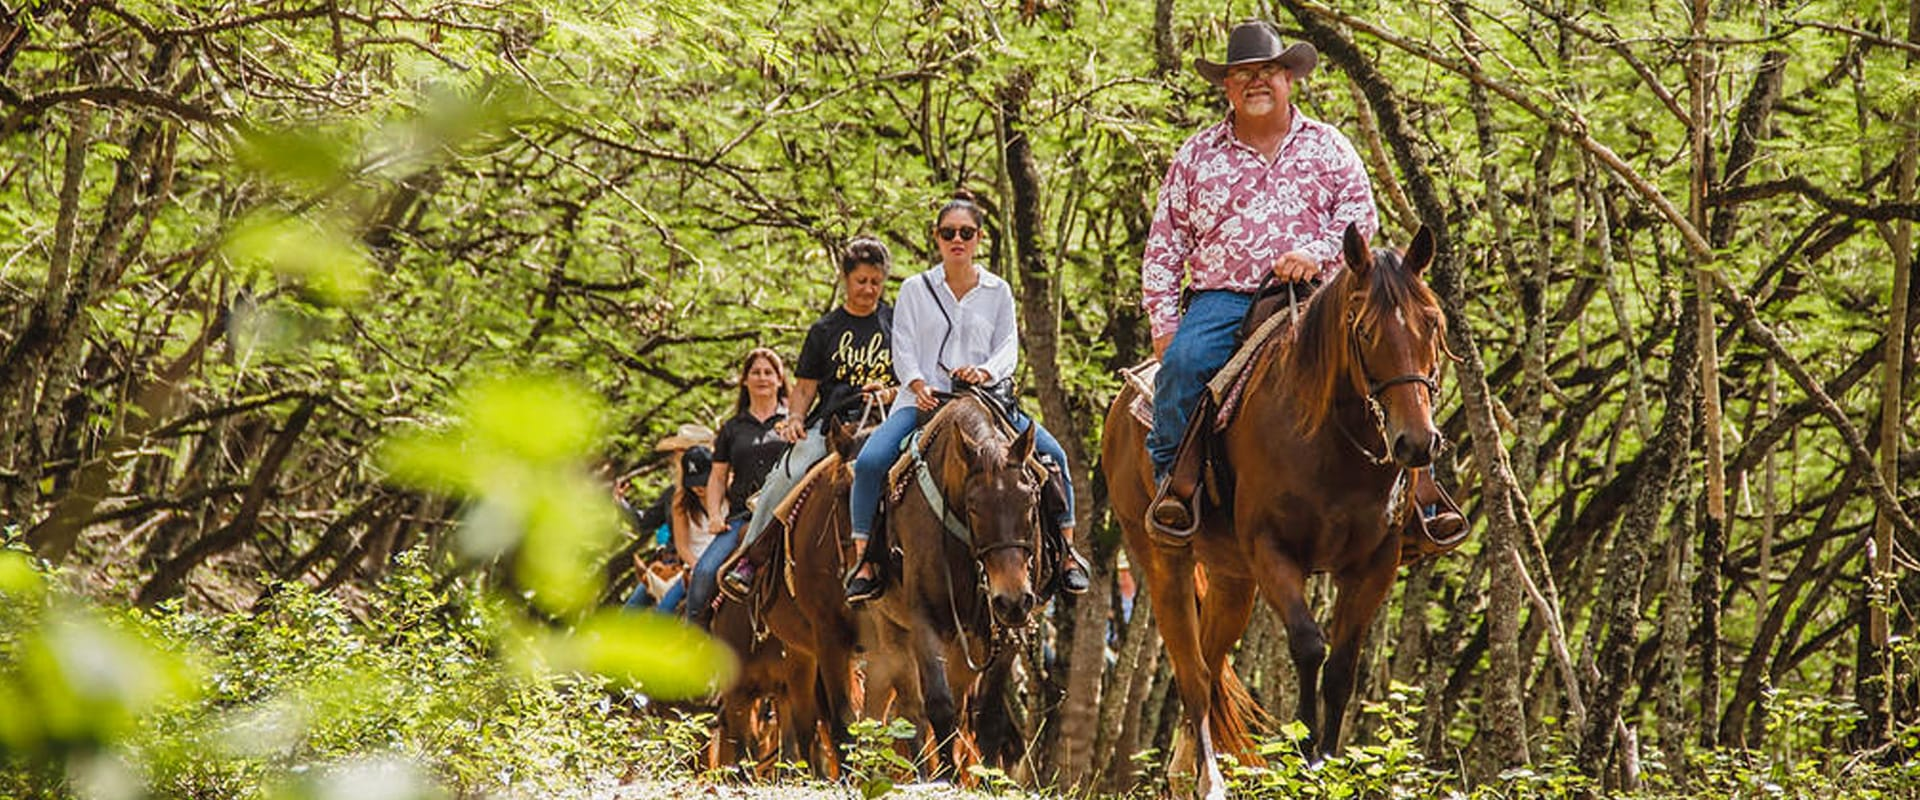 Explore Oahu's famous North Shore on horseback